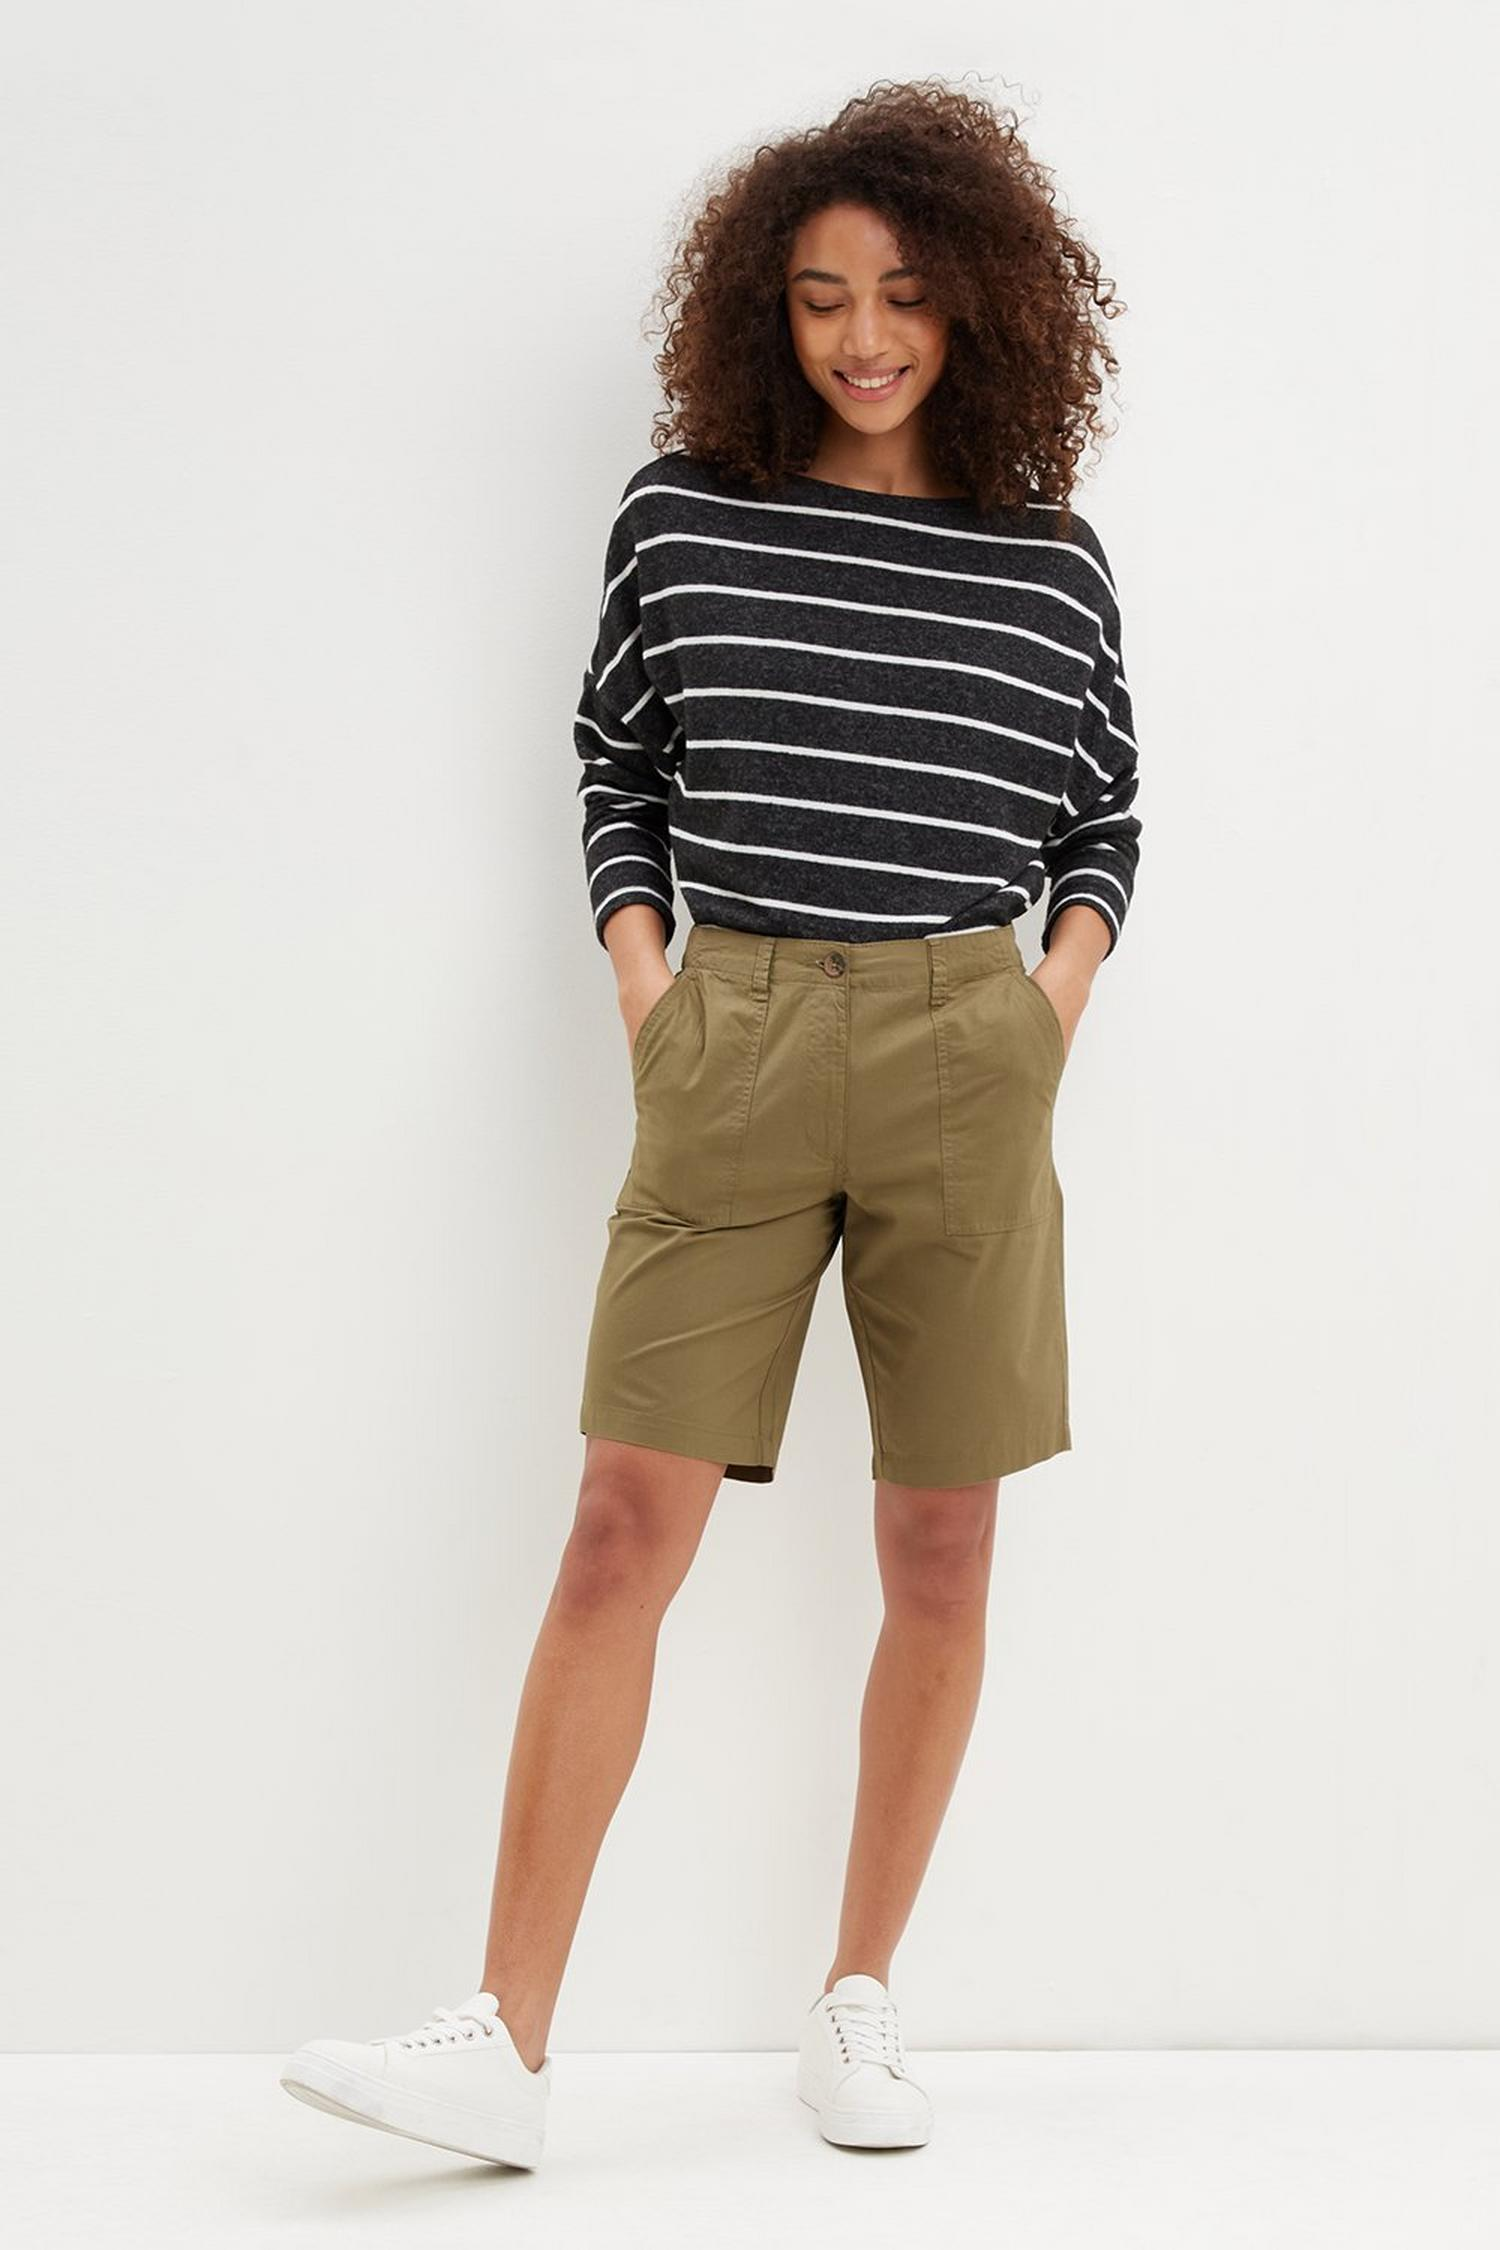 130 Khaki Poplin Knee Shorts image number 1